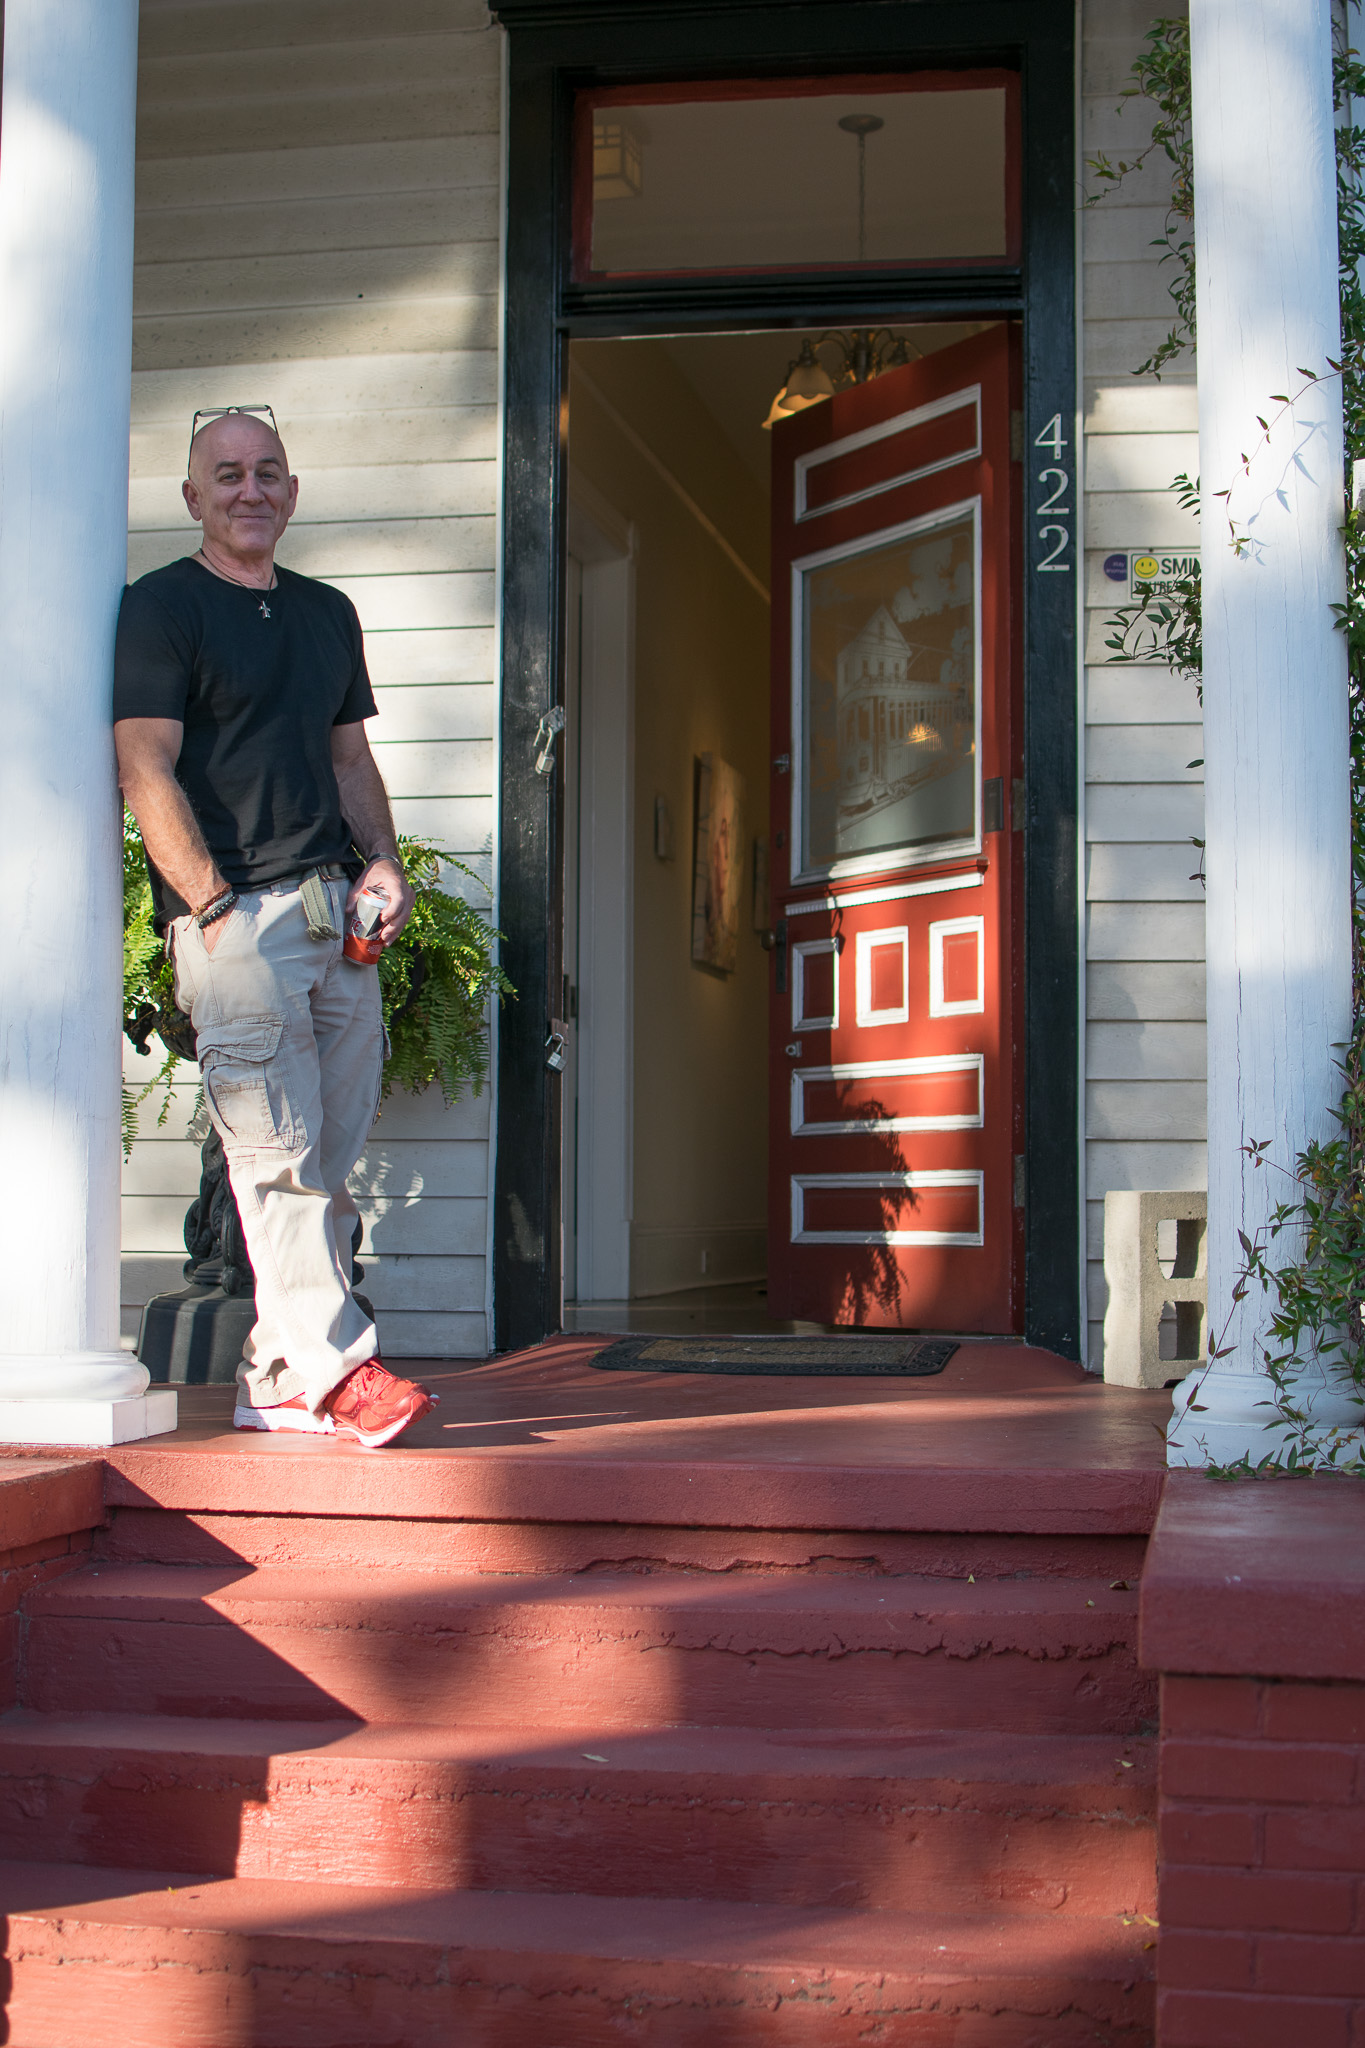 Thomas poses in front of the red front door atop of the red front steps.